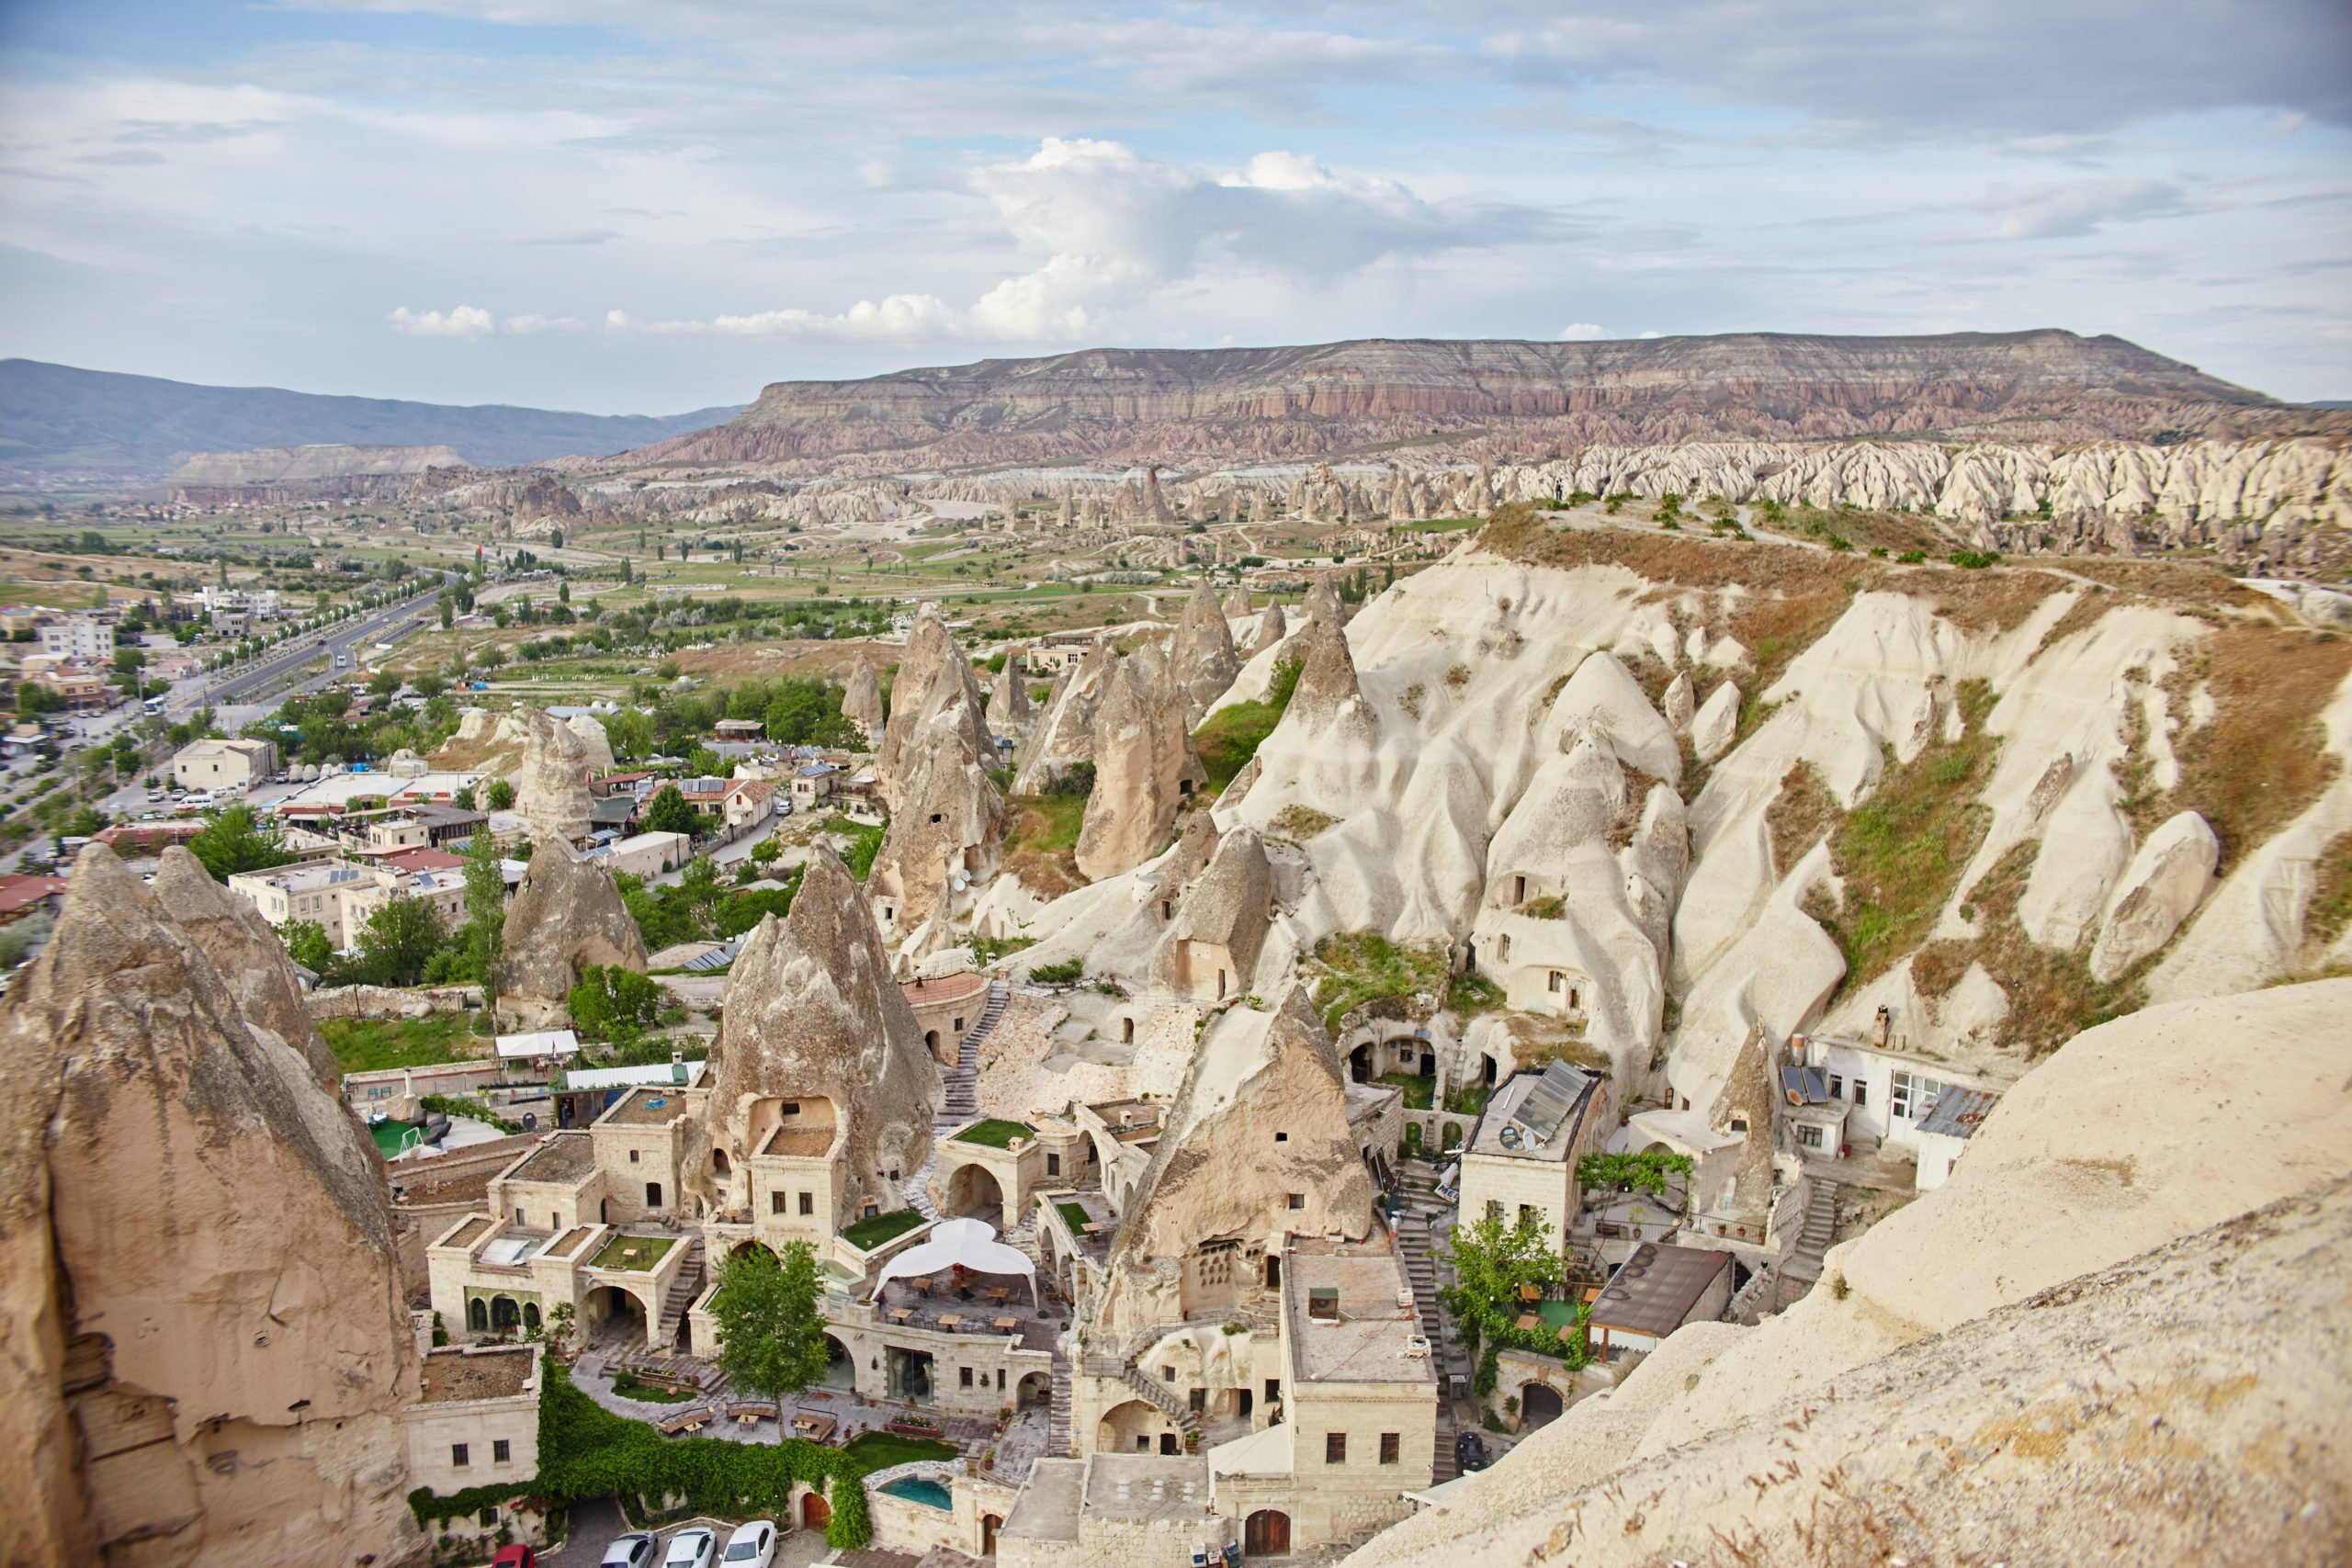 Admire The Rock Houses Caved In Stone In Goreme On The Cappadocia 3 Day Tour From Antalya